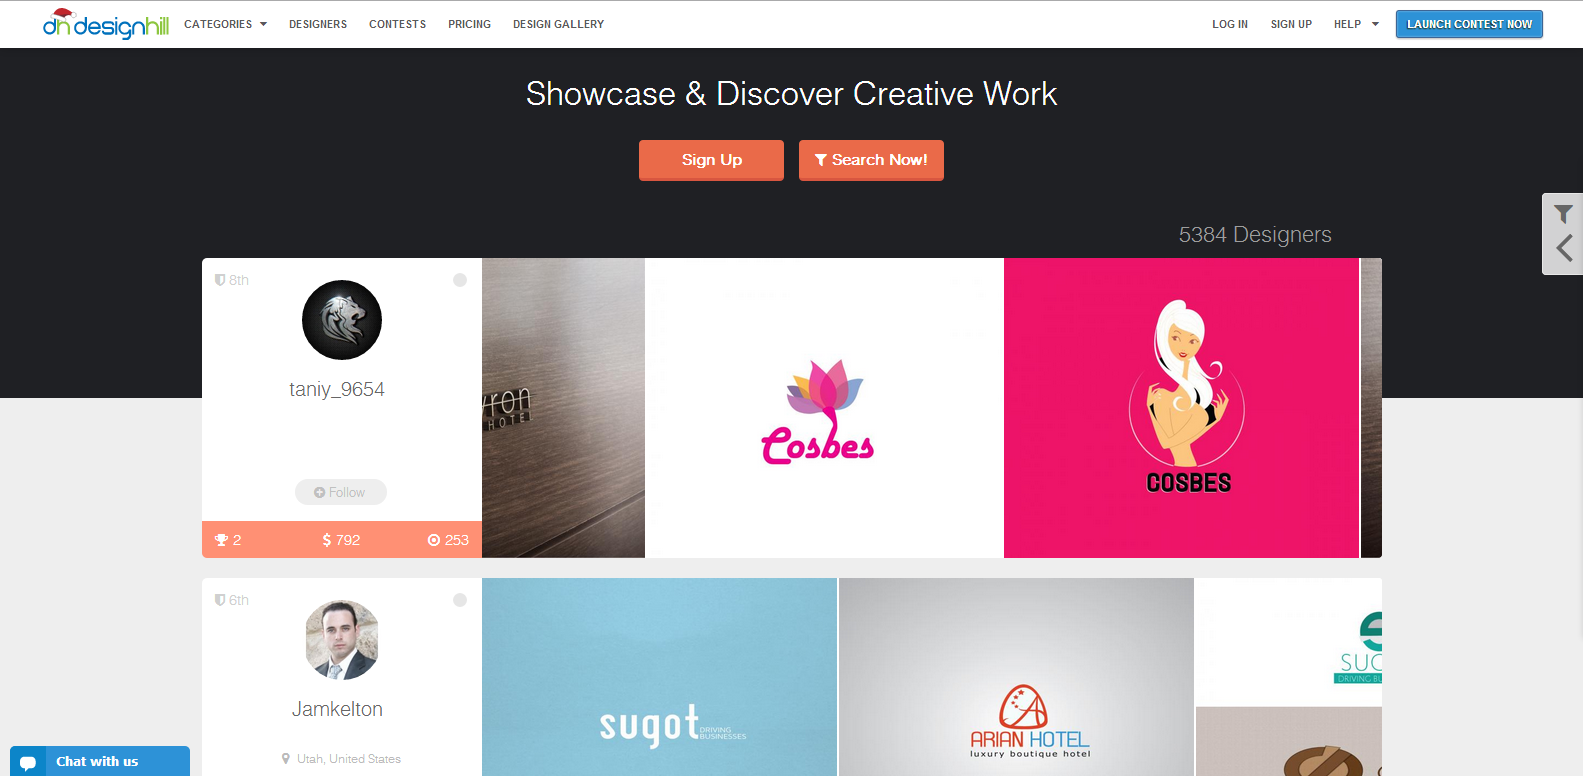 Get a Professional Logo in Just $99 at Designhill